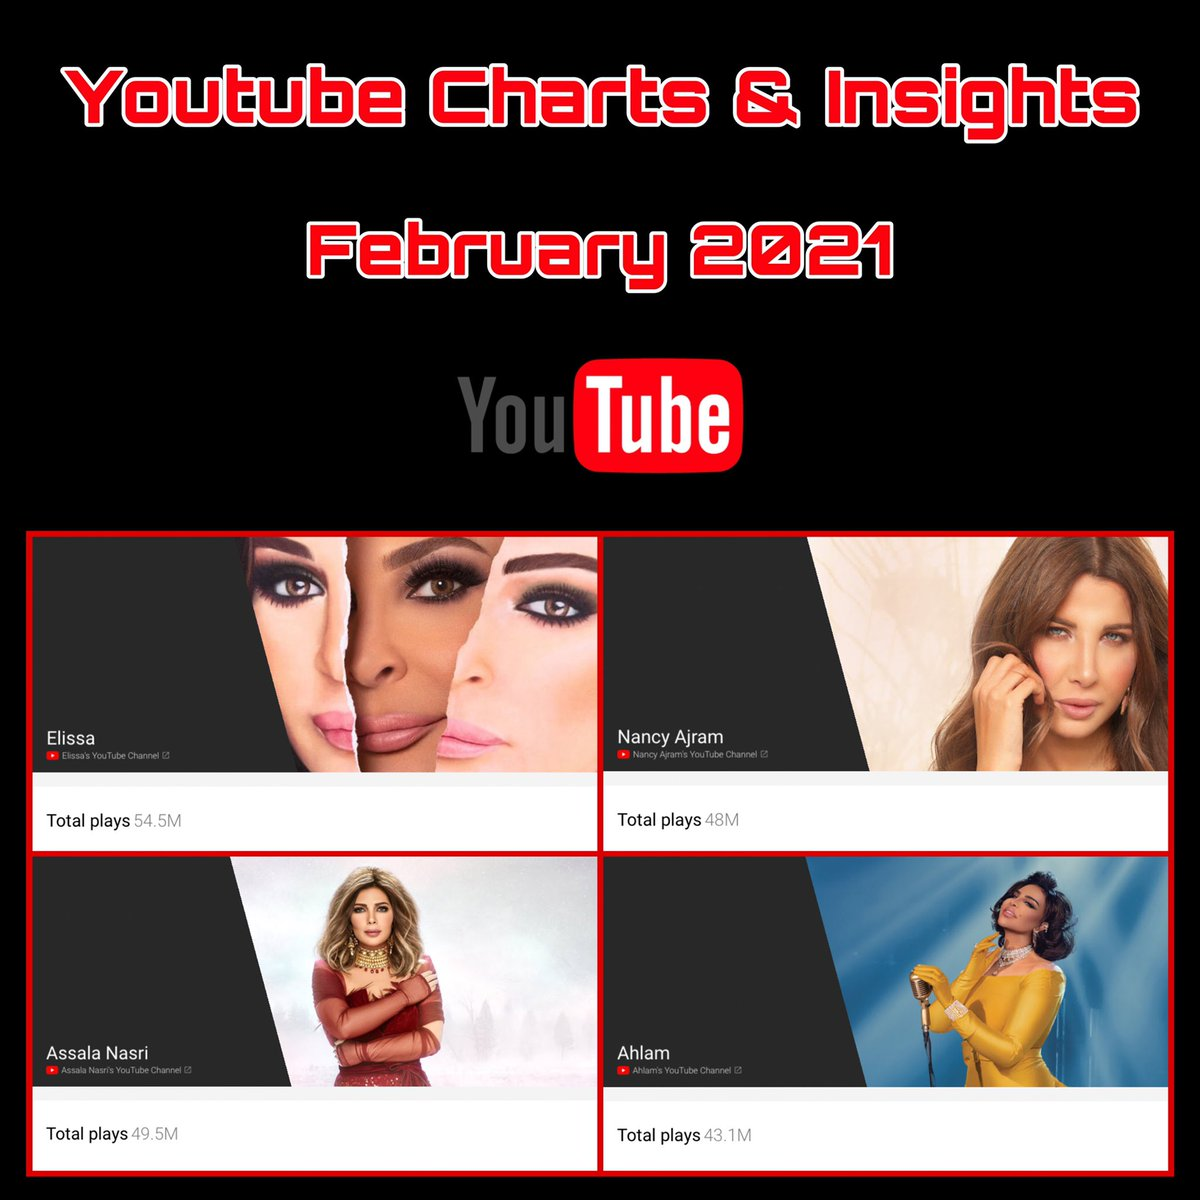 Youtube Views Charts & insights - February 2021   @elissakh 54.5M #اليسا @AssalaOfficial 49.5M #اصالة @NancyAjram 48M #نانسي_عجرم @AhlamAlShamsi 43.1M #احلام